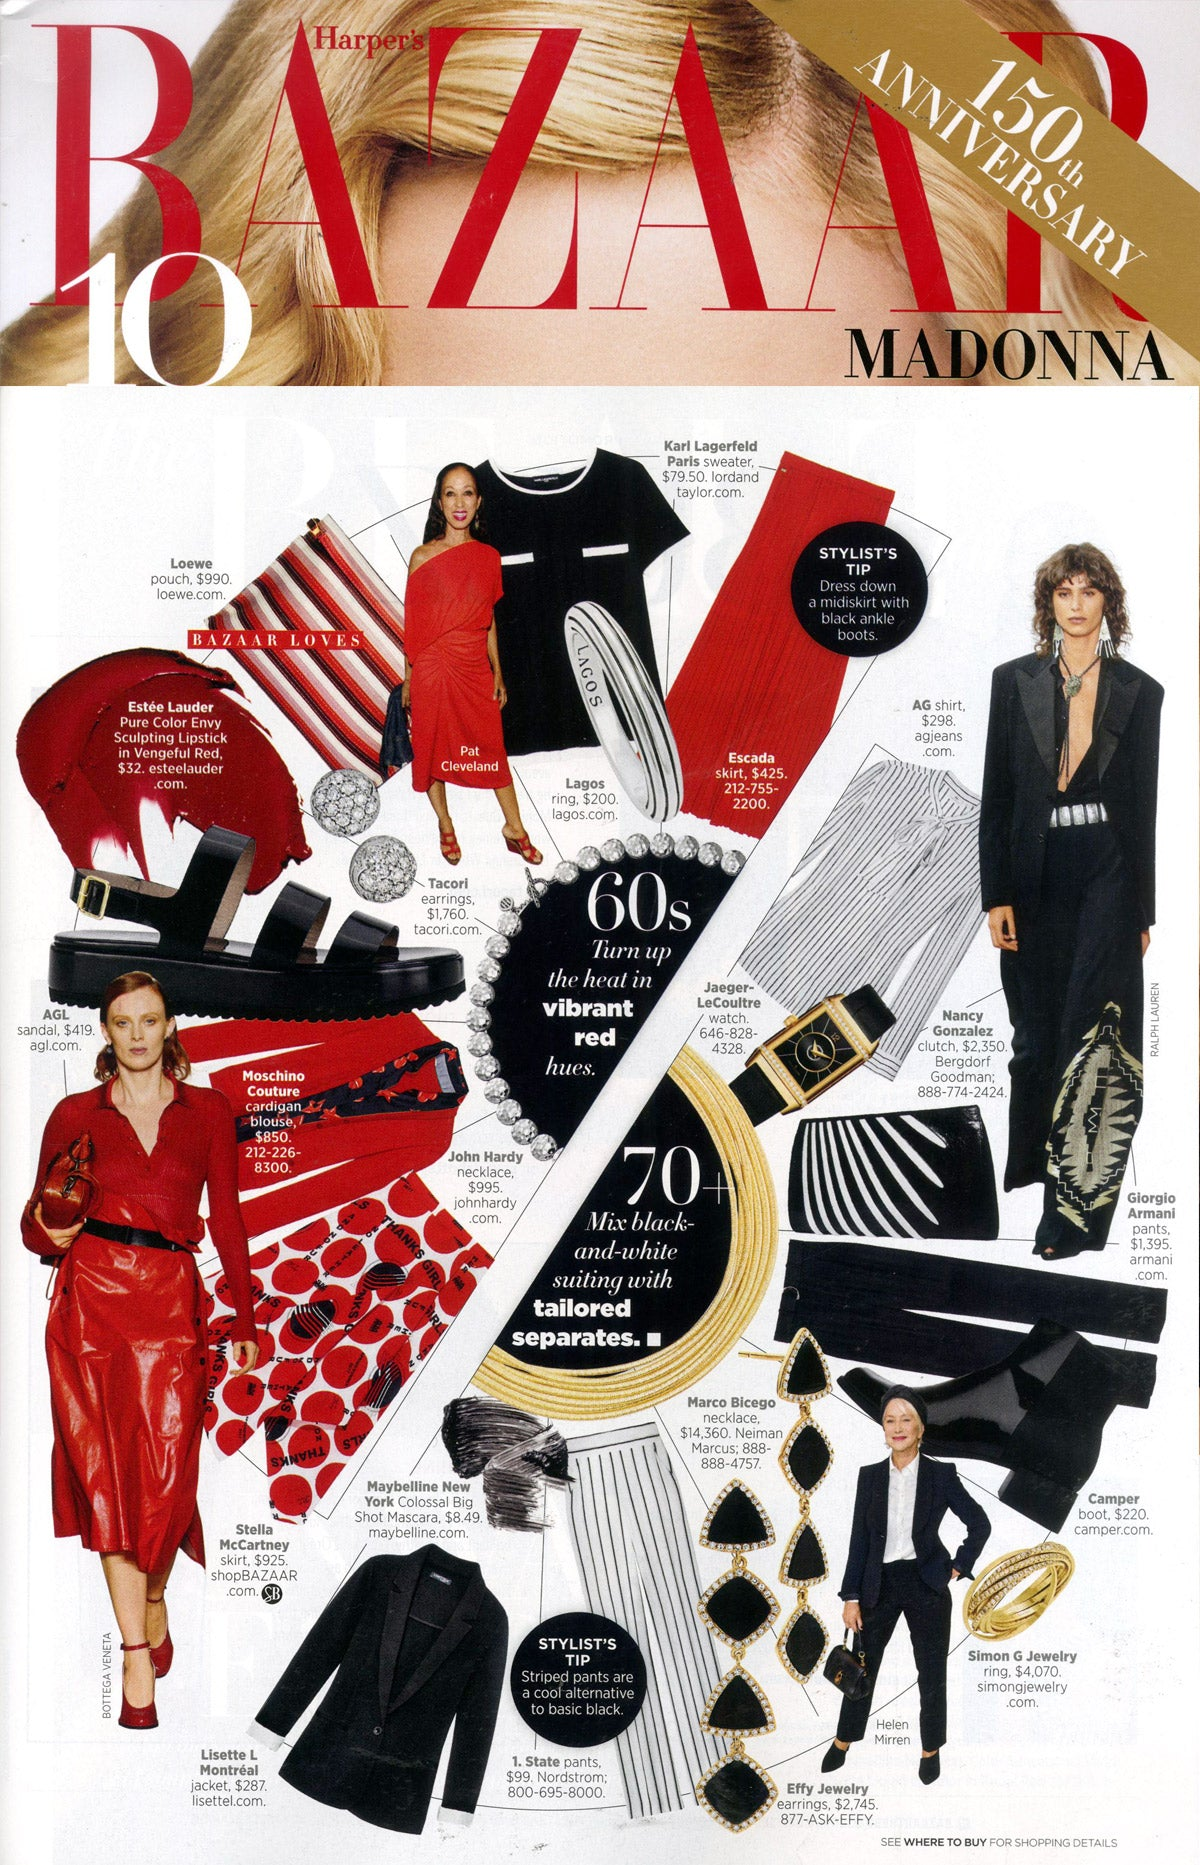 Marco Bicego Cairo Gold Seven Strand Woven Necklace in Harper's Bazaar